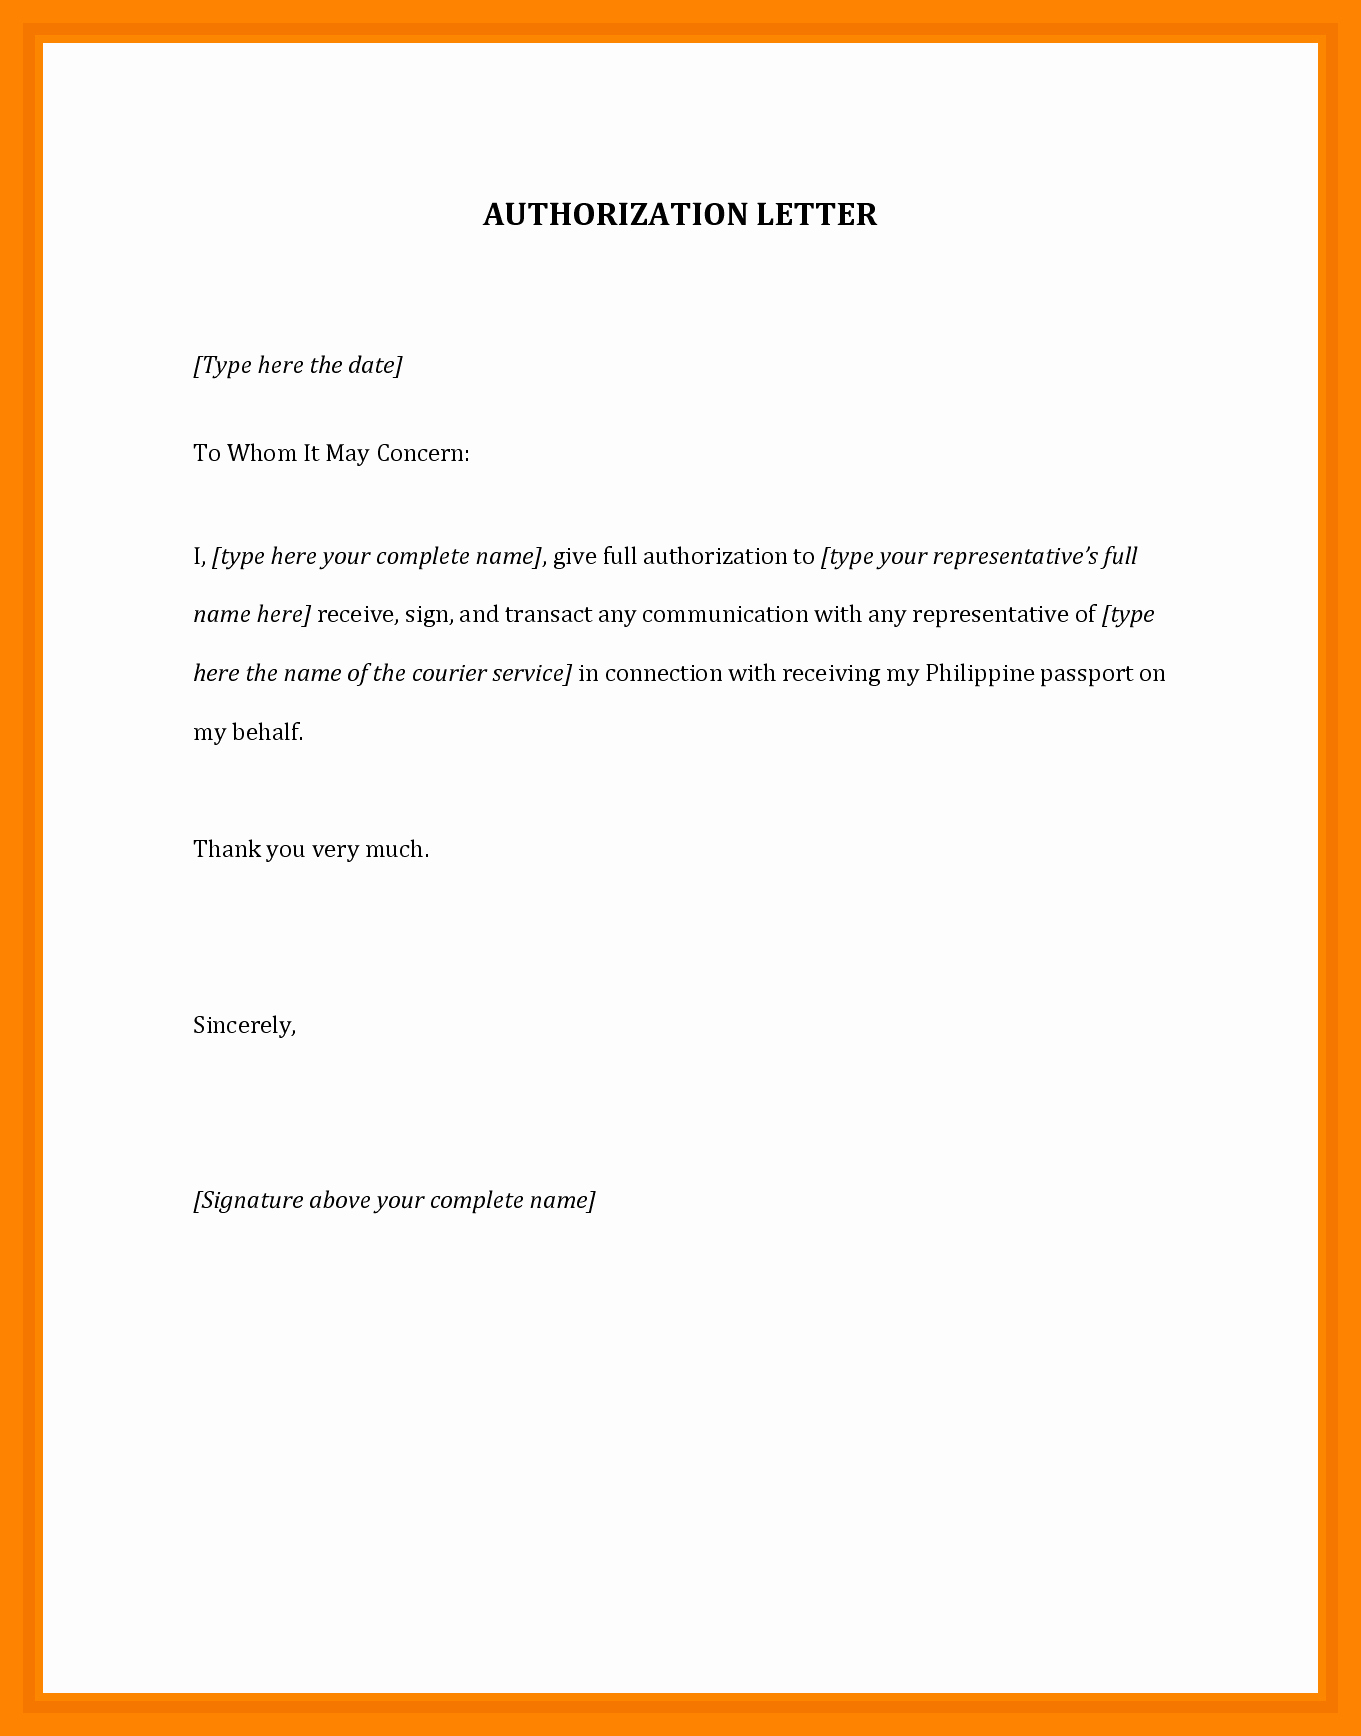 Sample Letter Of Reimbursement Money Luxury 12 Authorization Letter Sample for Claiming Money